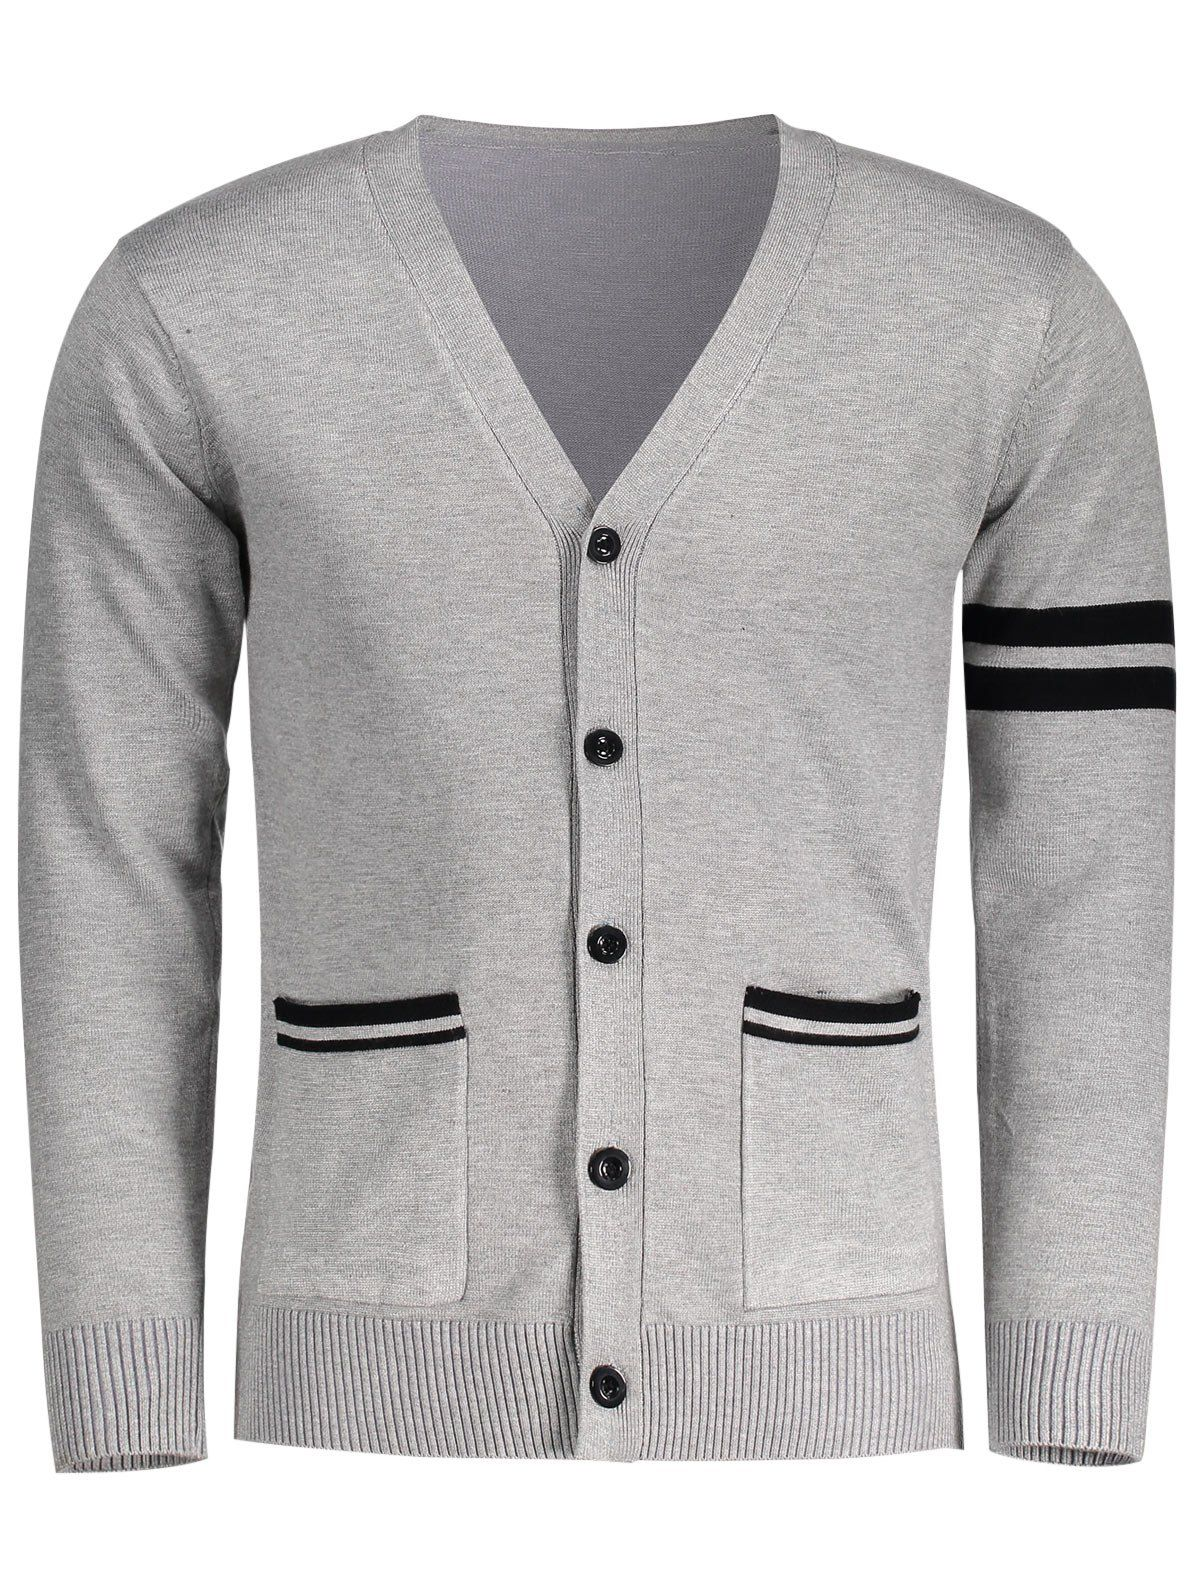 V Neck Button Up Mens Cardigan: V Neck Button Up Mens Cardigan ...